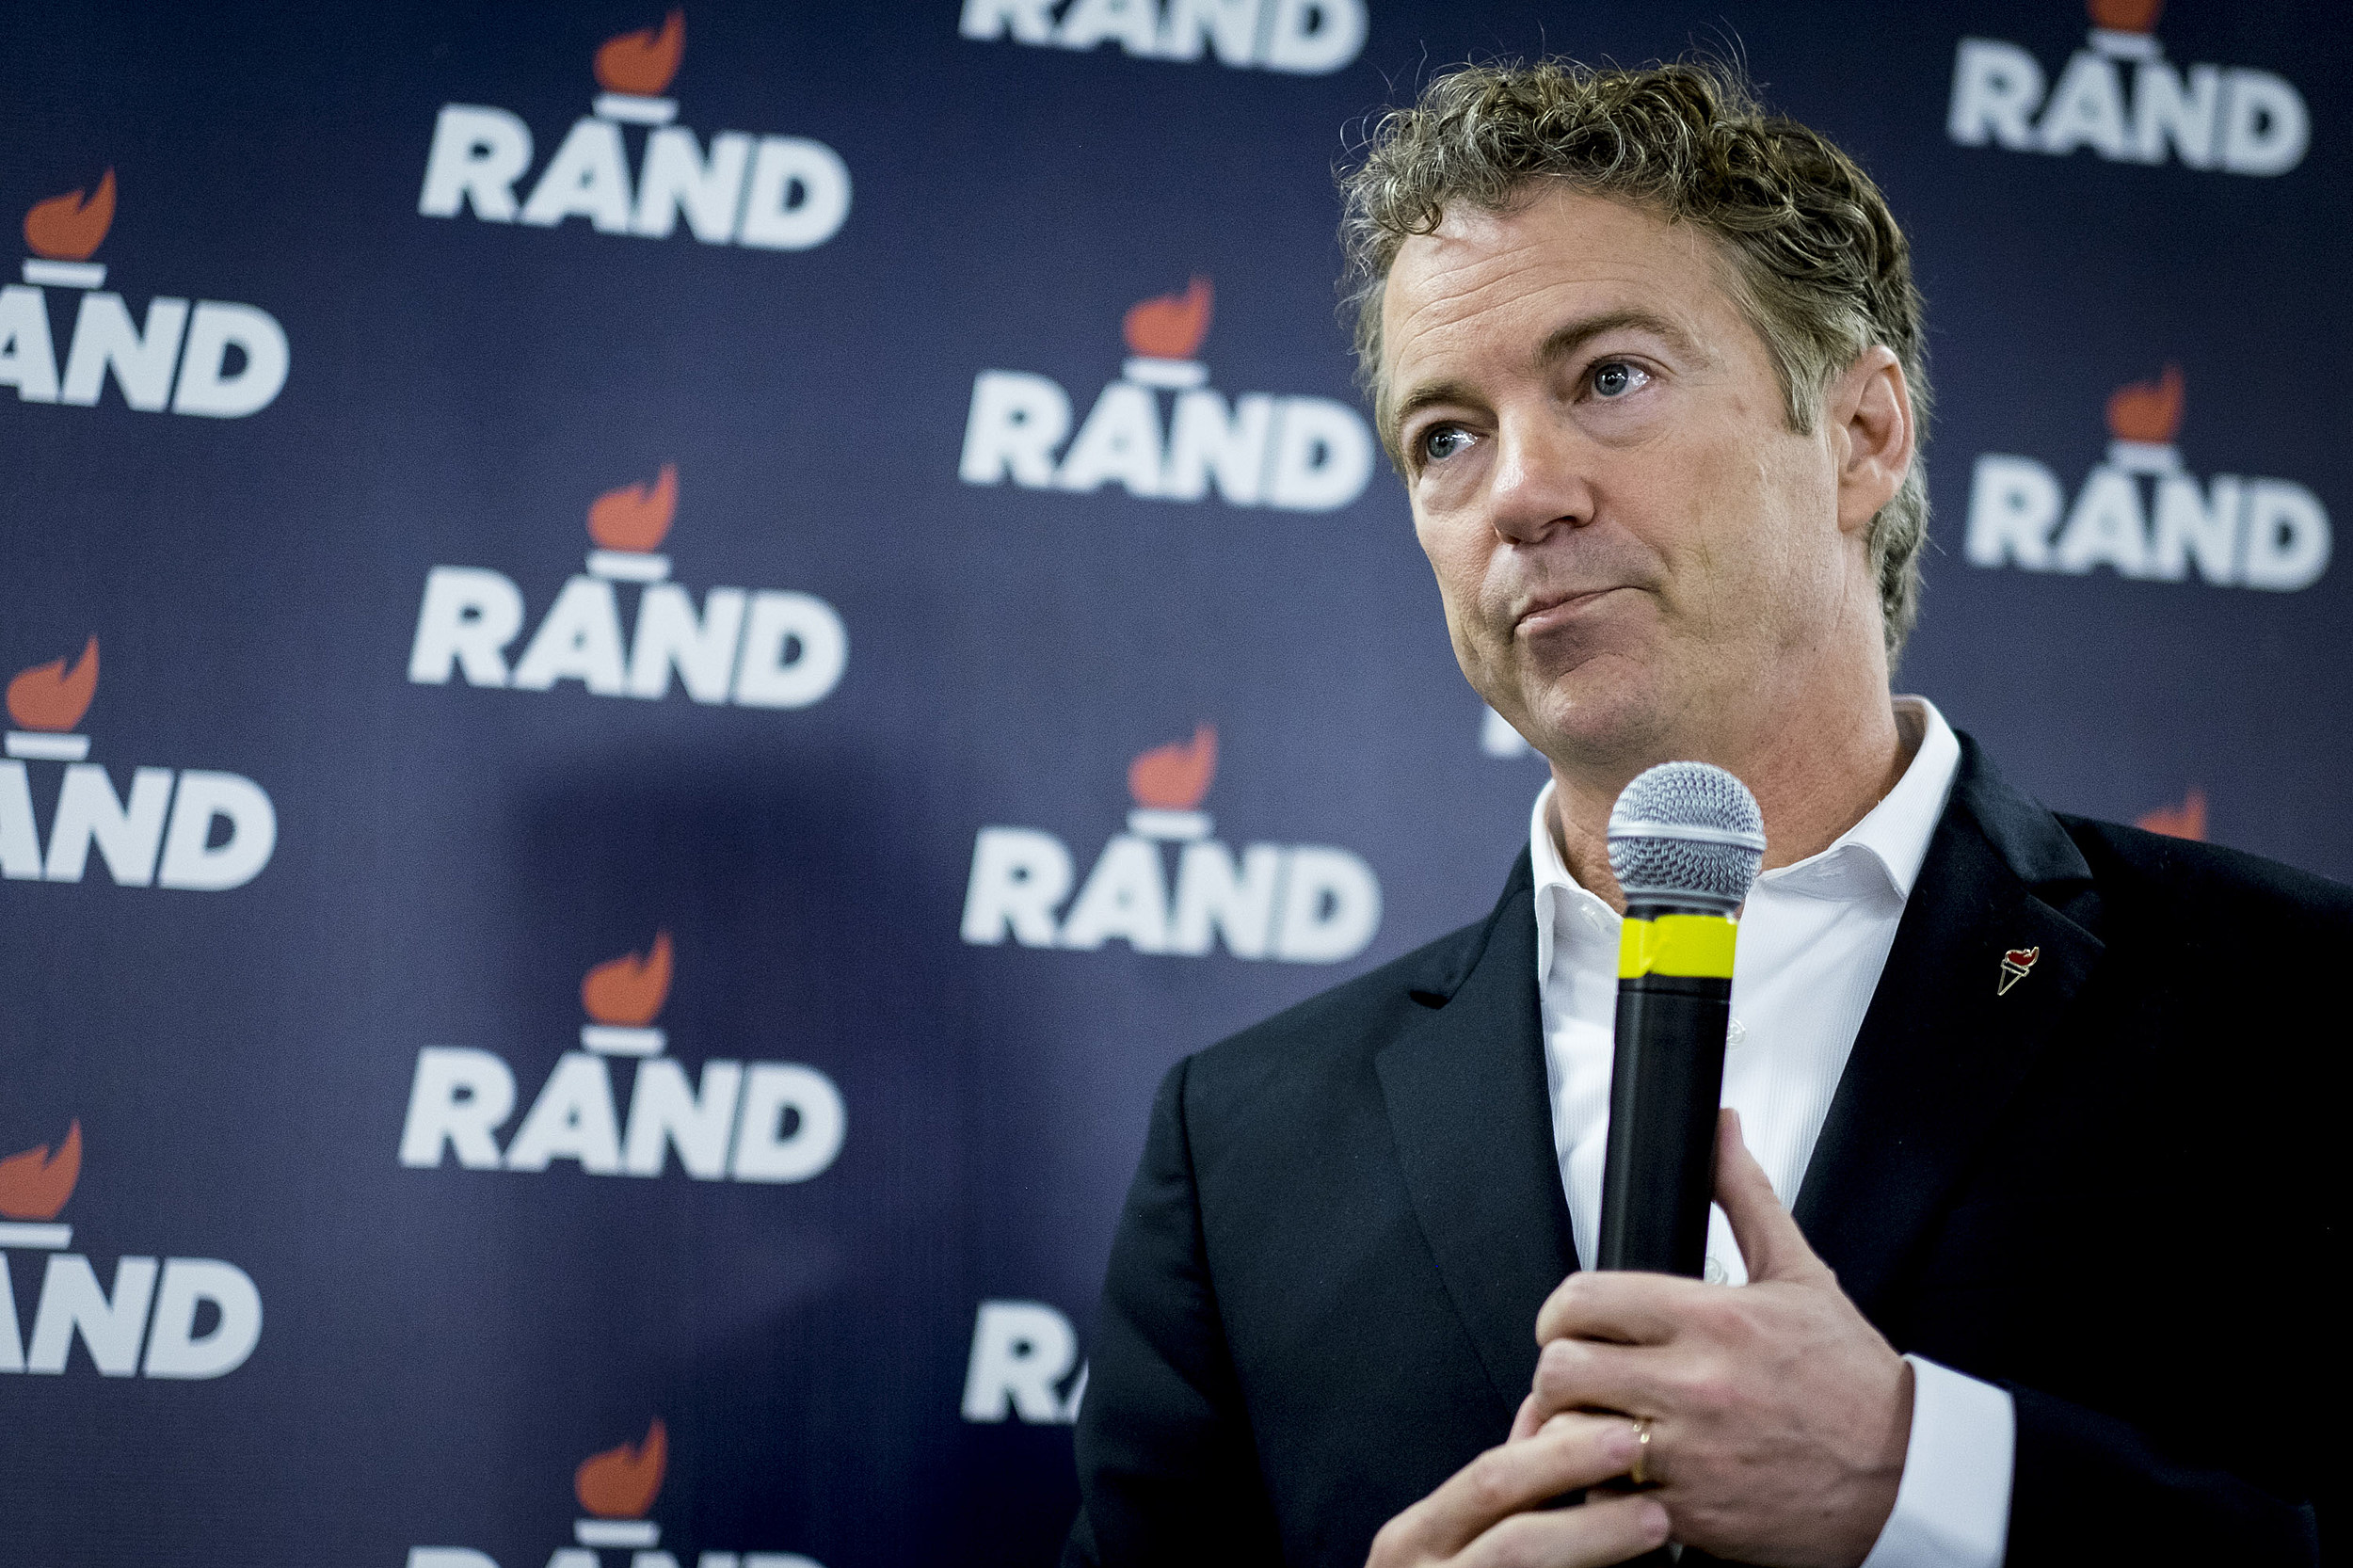 Rand Paul Holds Caucus Day Rally In Des Moines